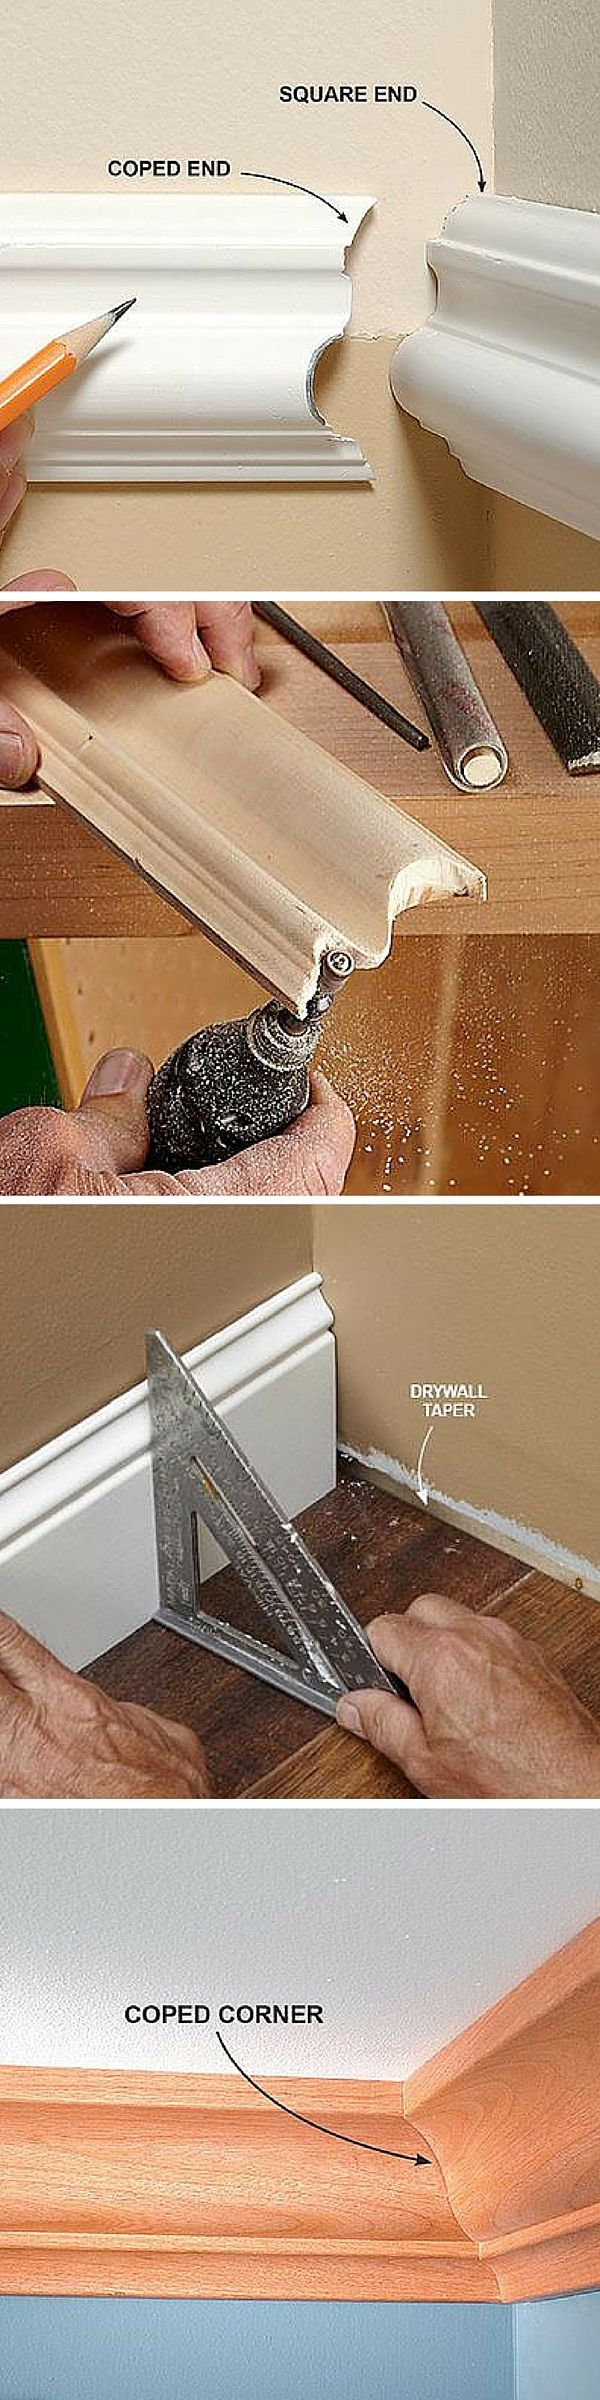 How To Cope Joints For Wood Corner Trim Home Repair Moldings And Trim Woodworking